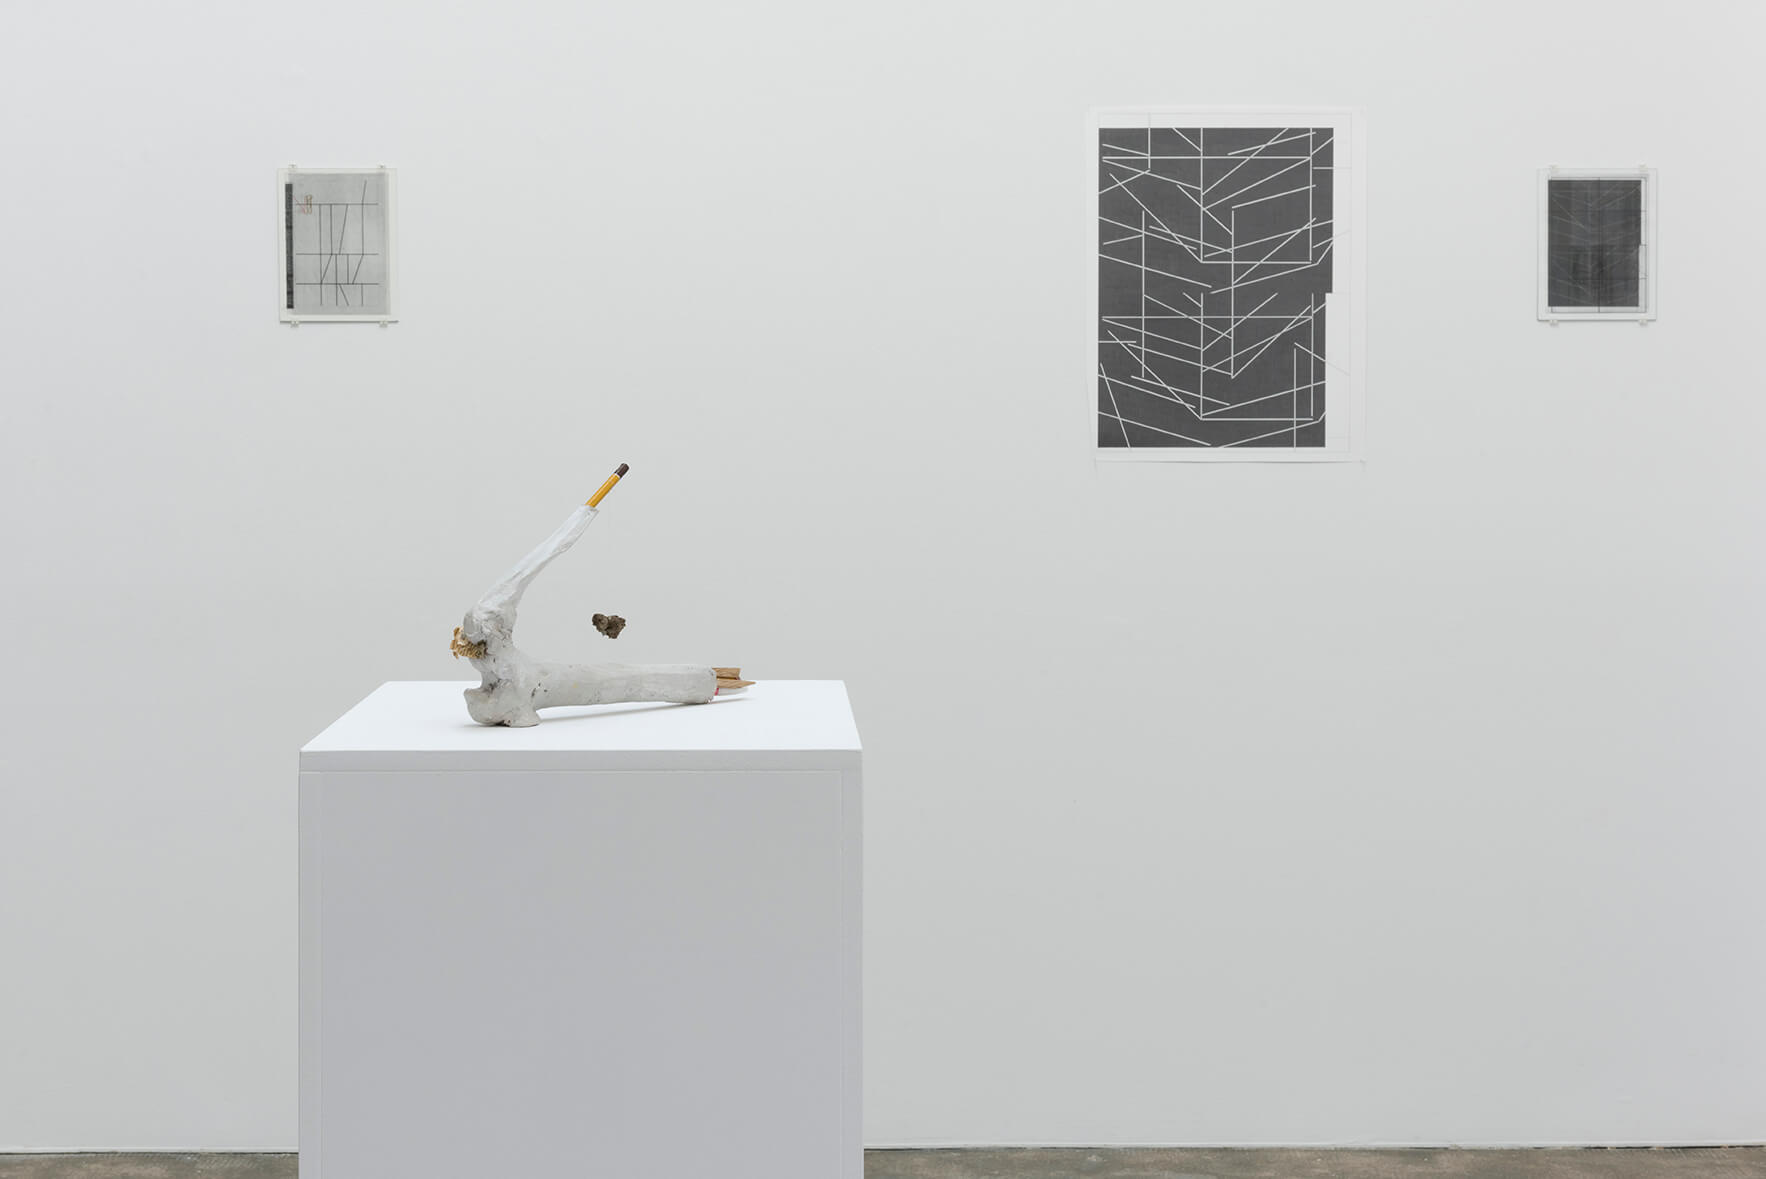 Installation view: A Drawing Placed Between Two Objects, ProjecteSD | A Drawing Placed Between Two Objects (with Mark Manders) | ProjecteSD